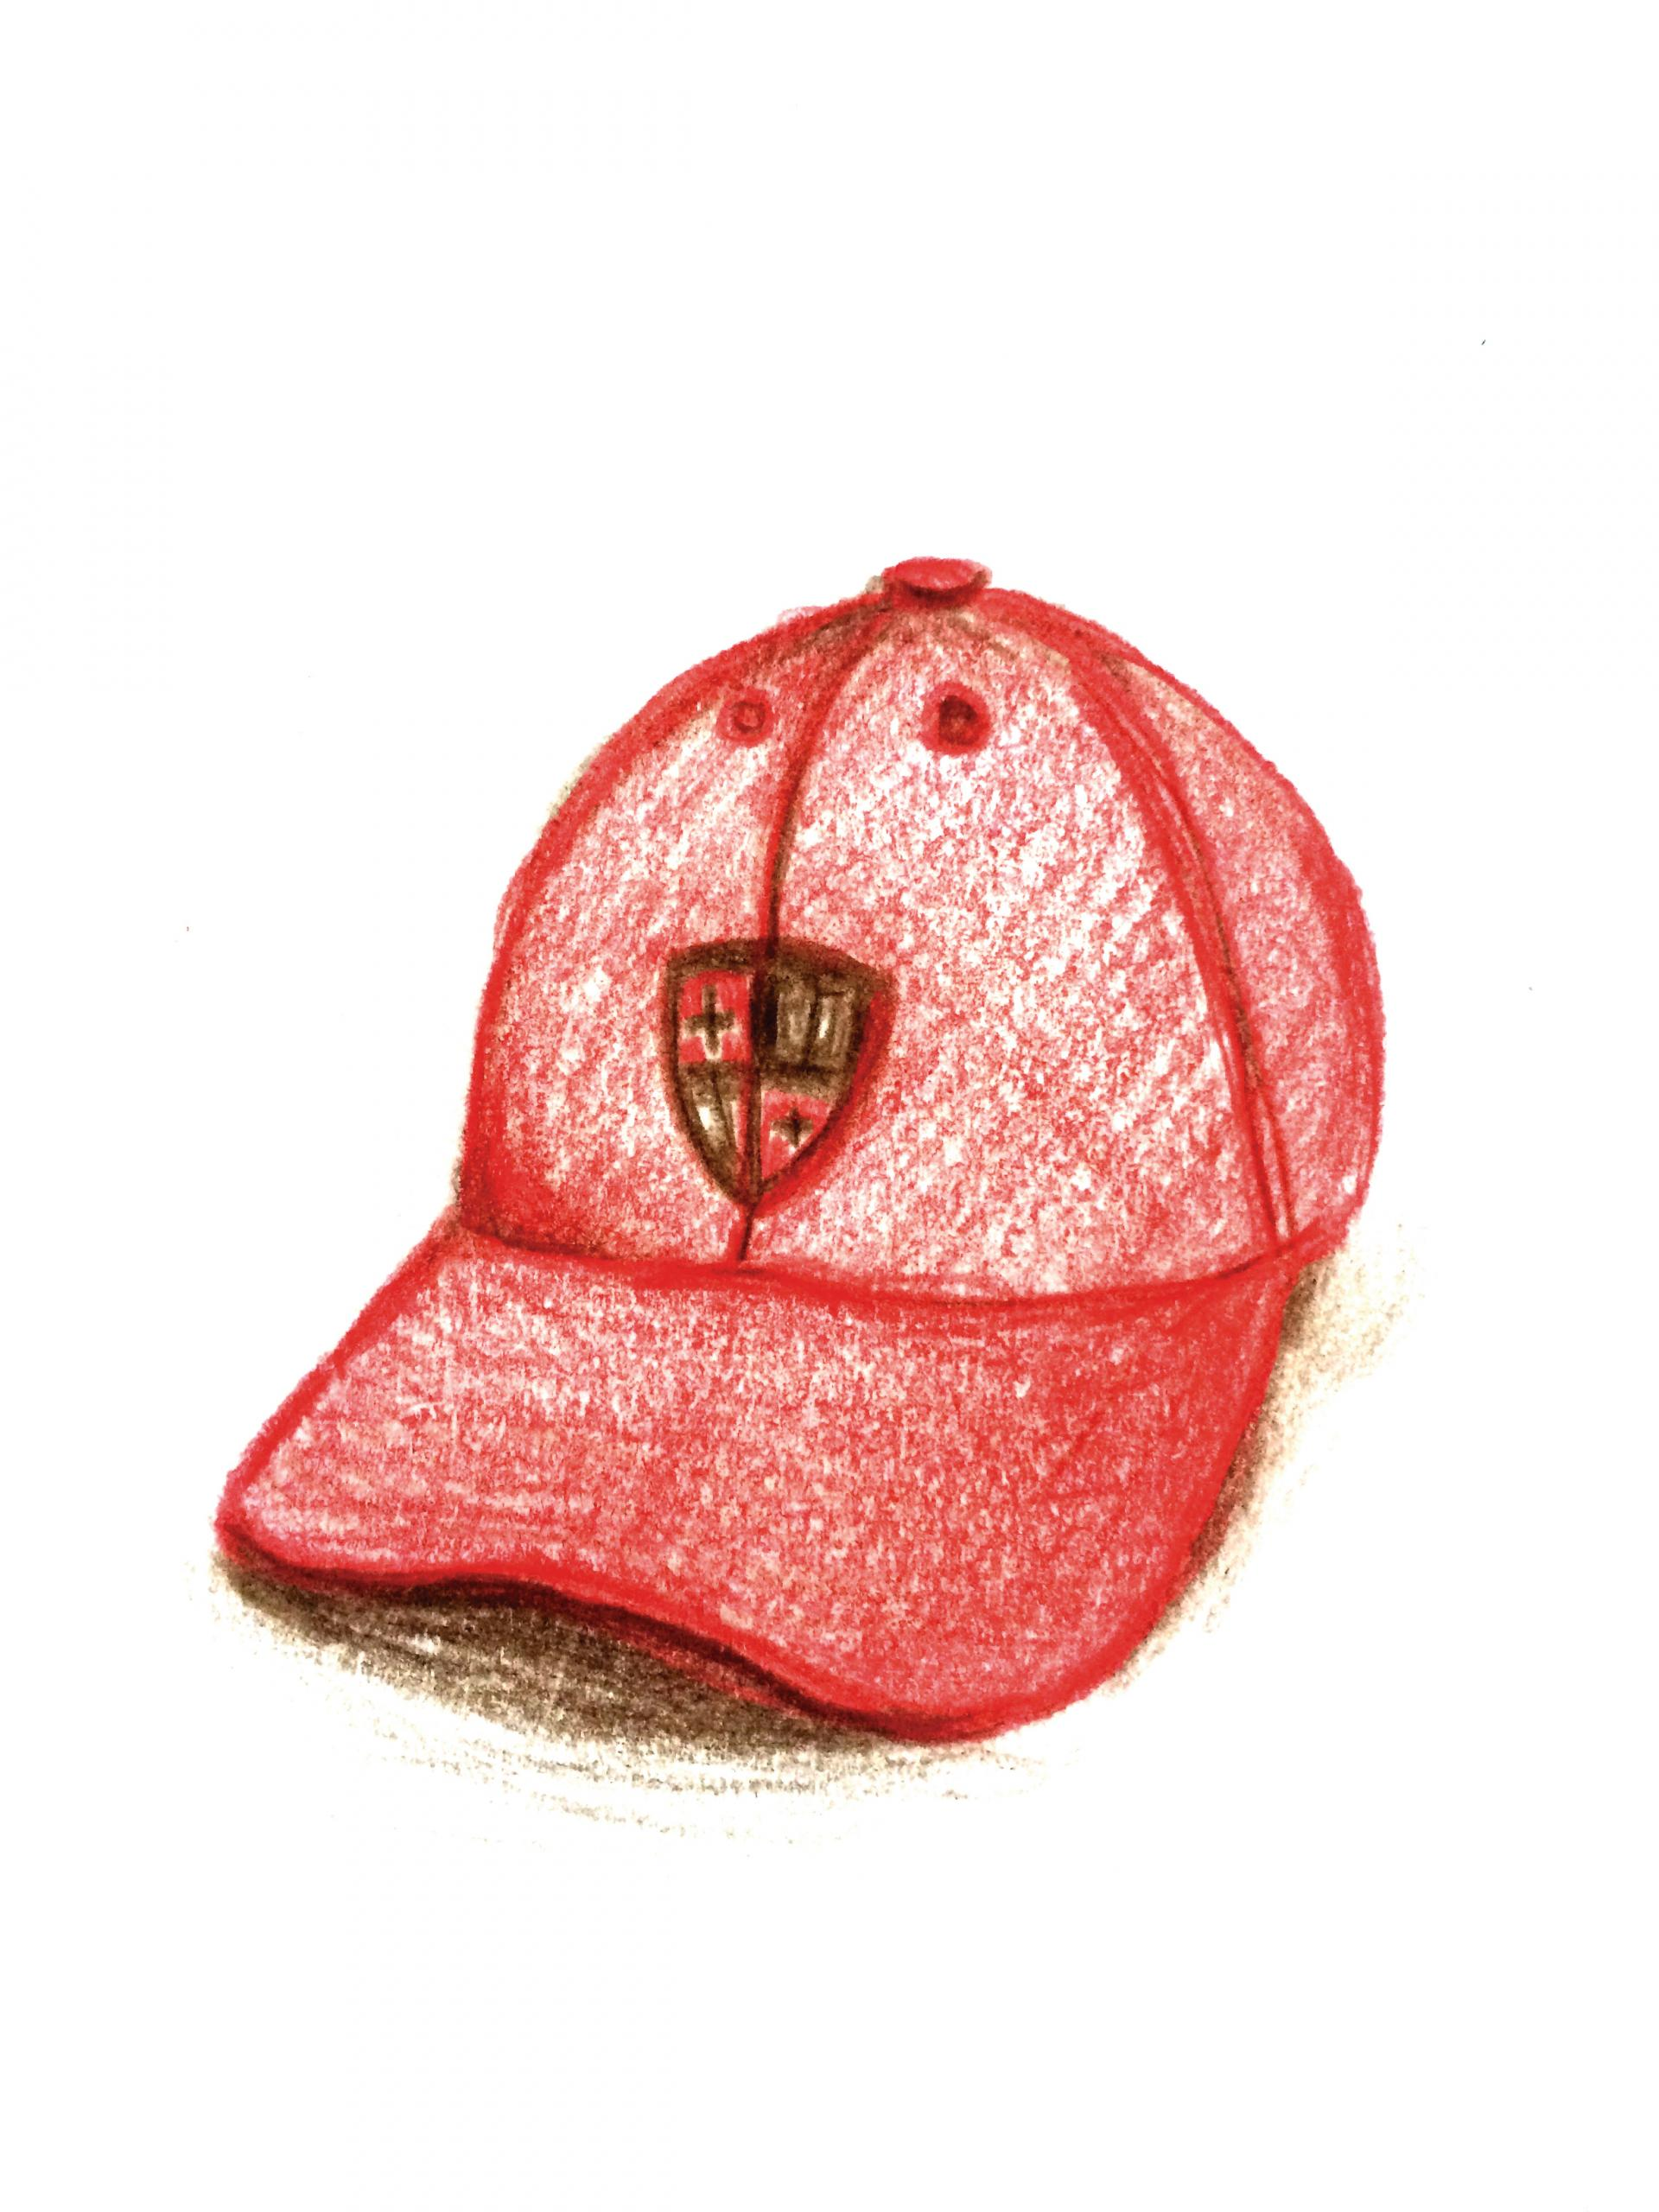 Drawing of a St. Lawrence baseball cap